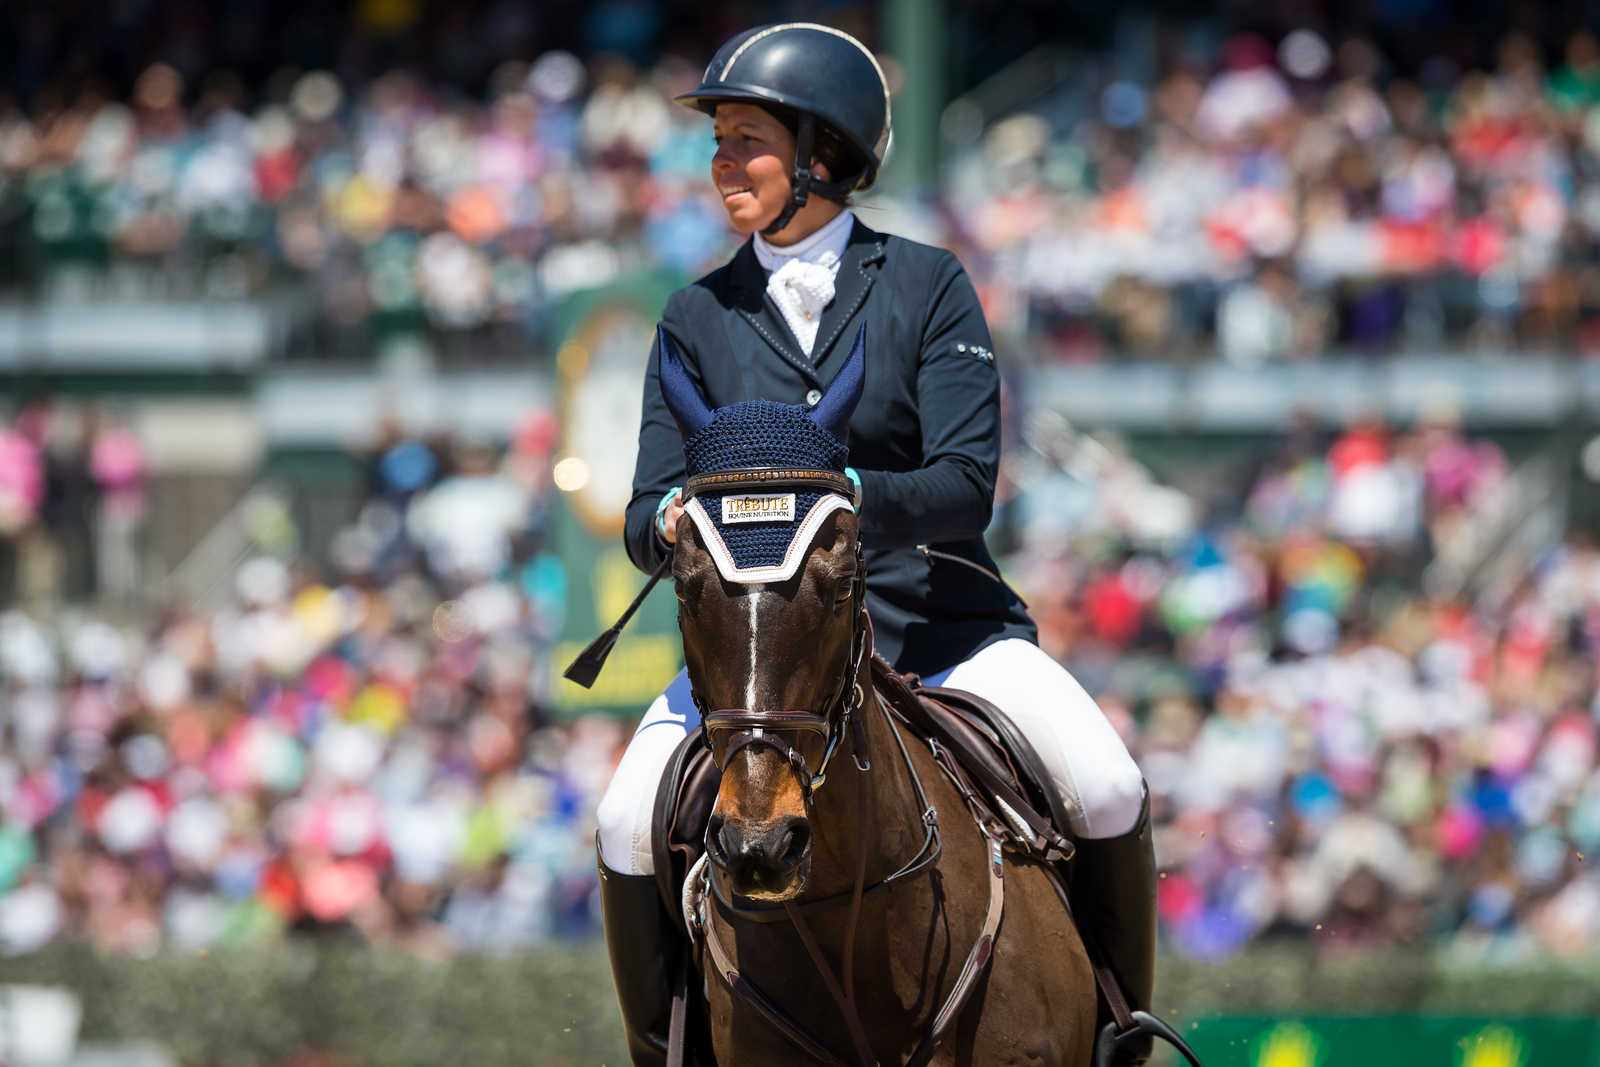 Meghan O'Donoghue, and Pirate in the Stadium Jumping 4.26.15.